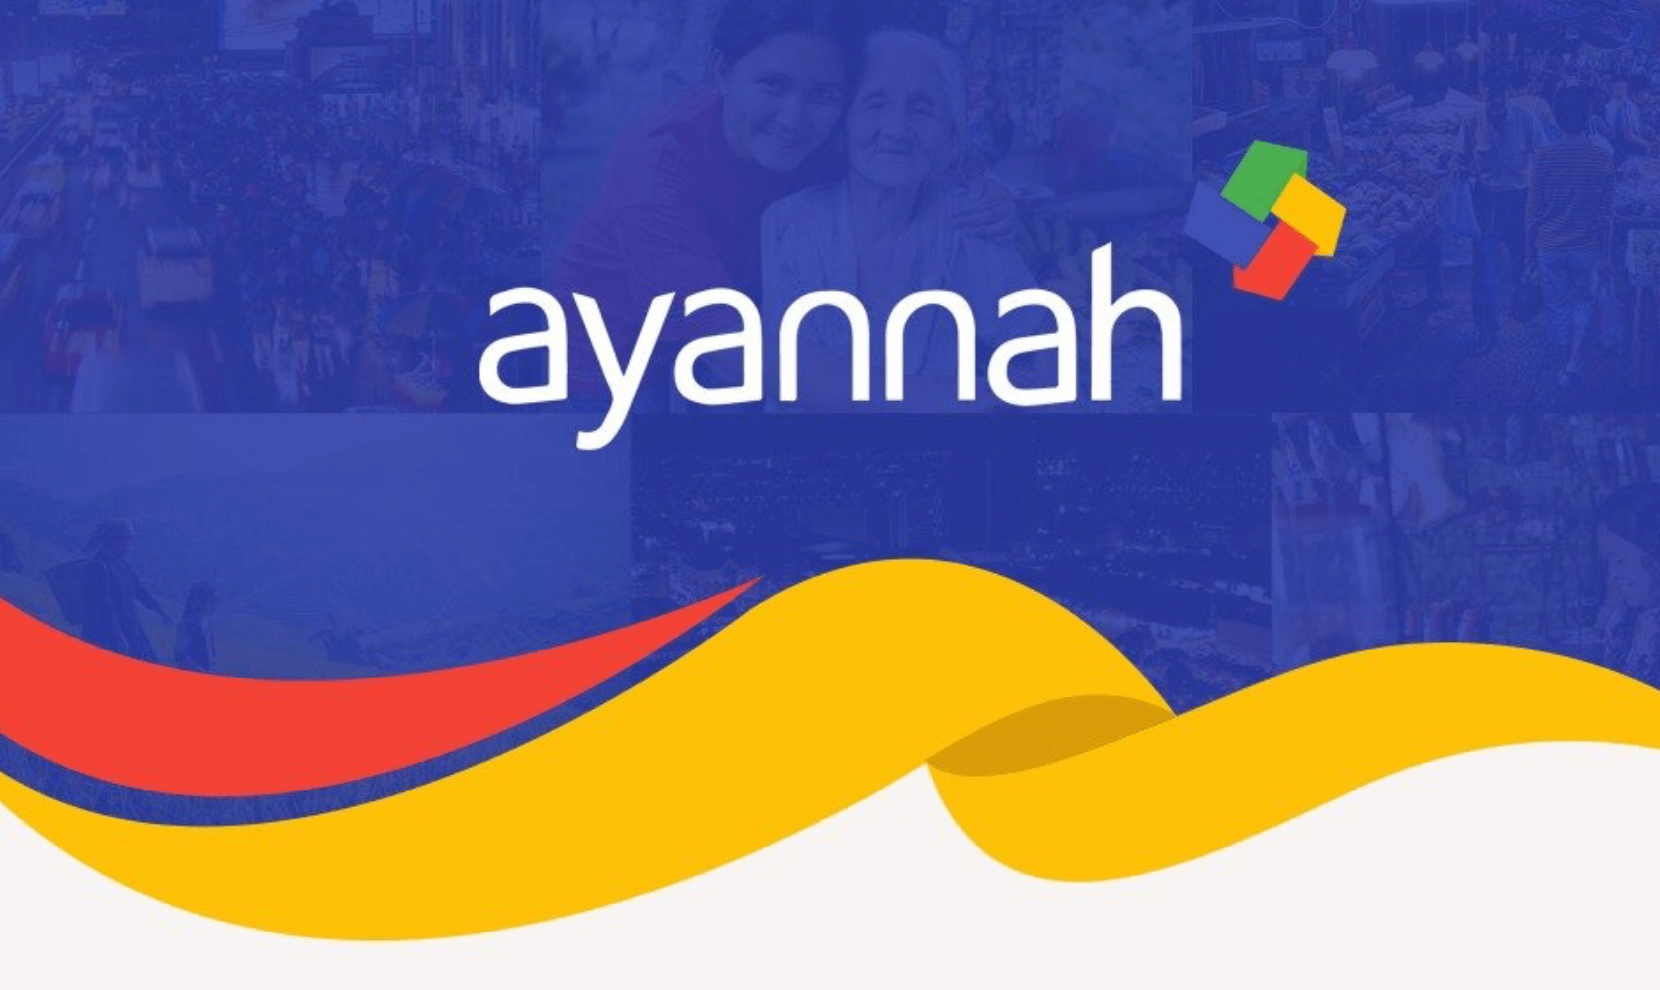 philippine-fintech-startup-ayannah-raises-series-b-funding-to-expand-into-vietnam-india